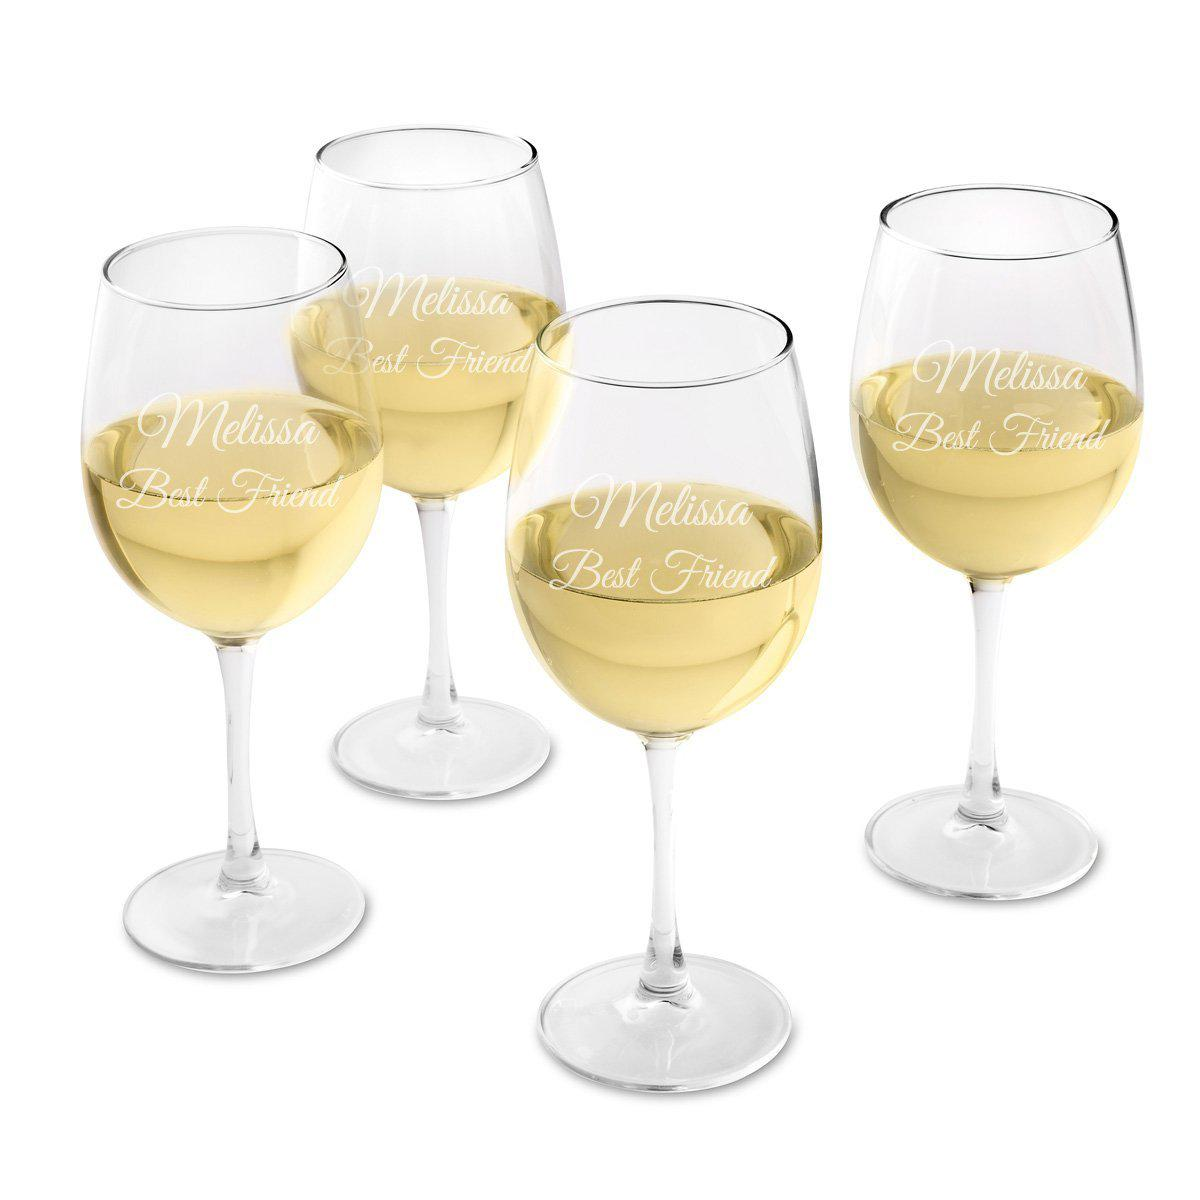 Personalized-White-Wine-Glasses-Set-of-4-All